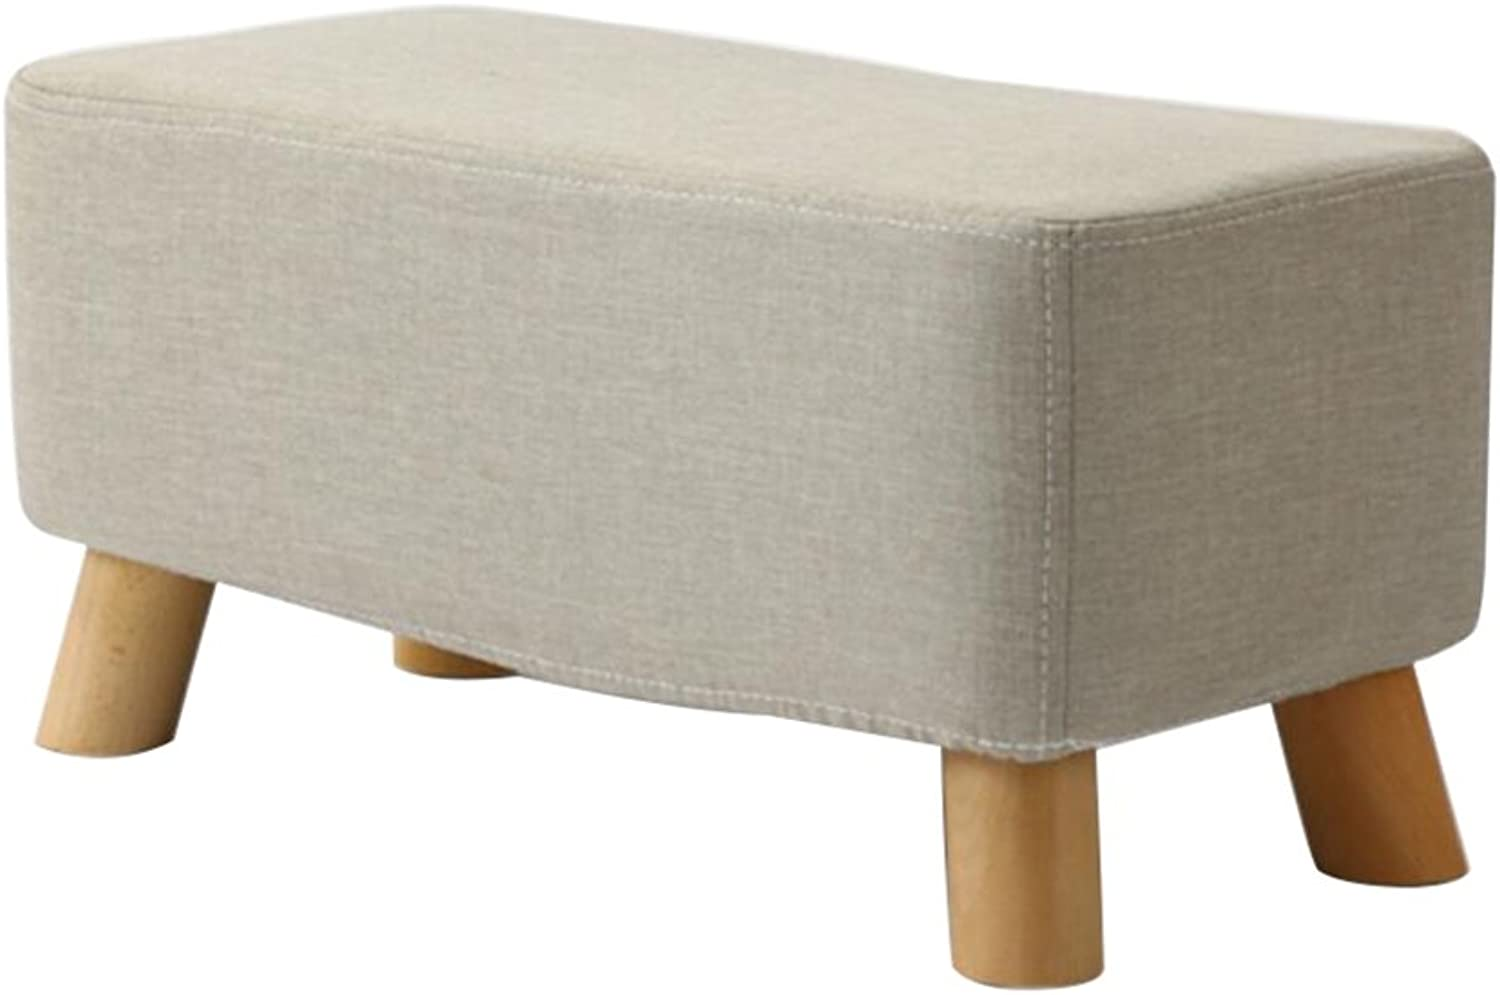 HQCC Bench Living Room Solid Wood Stool Simple Creative wear shoes Bench Fabric Sofa Bench Rectangular pier (color    2)